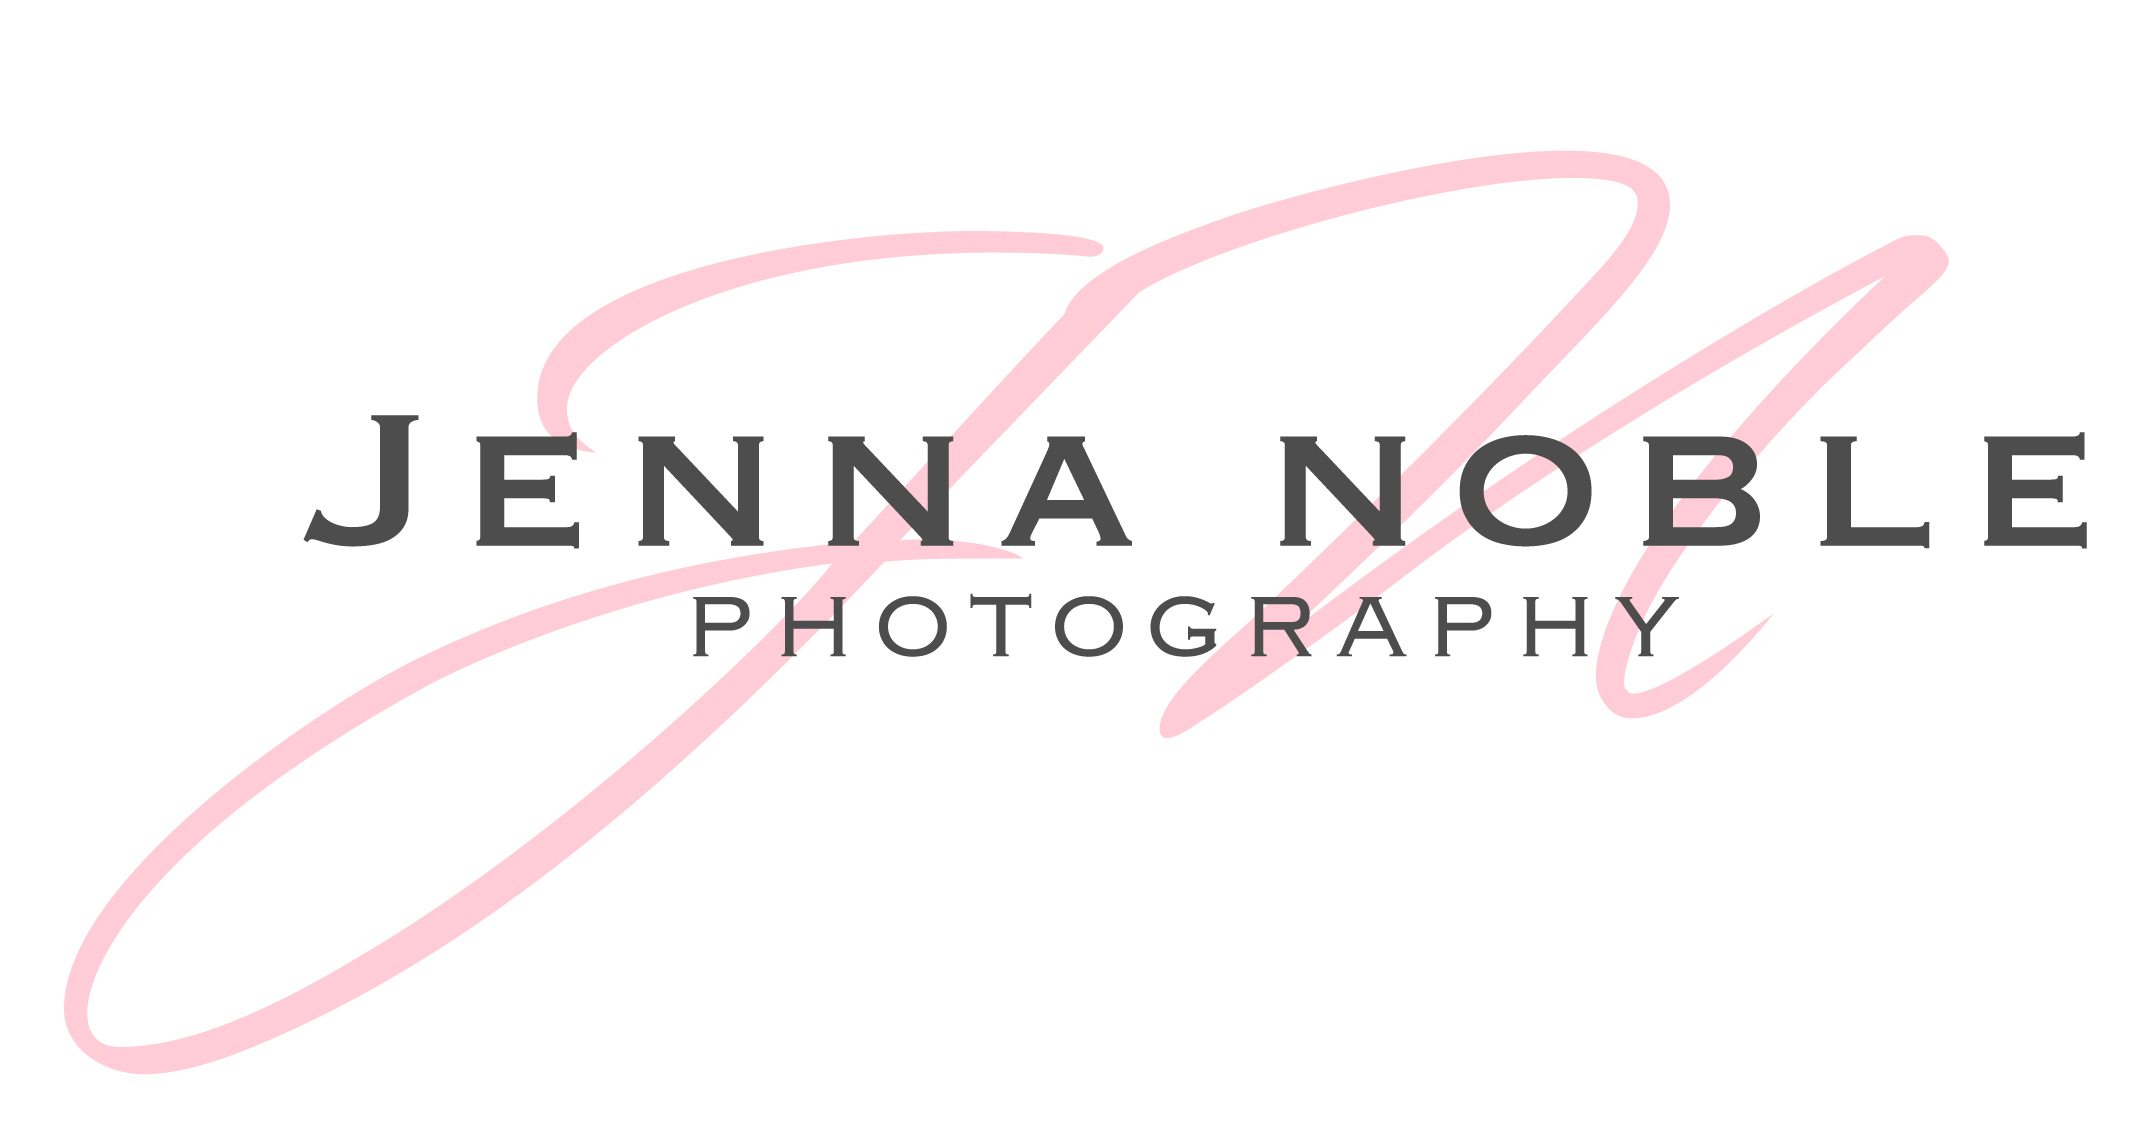 Professional family photograper | Jenna Noble Photography in Bromley, Bickley, Orpington, Petts Wood and surrounding areas in Kent